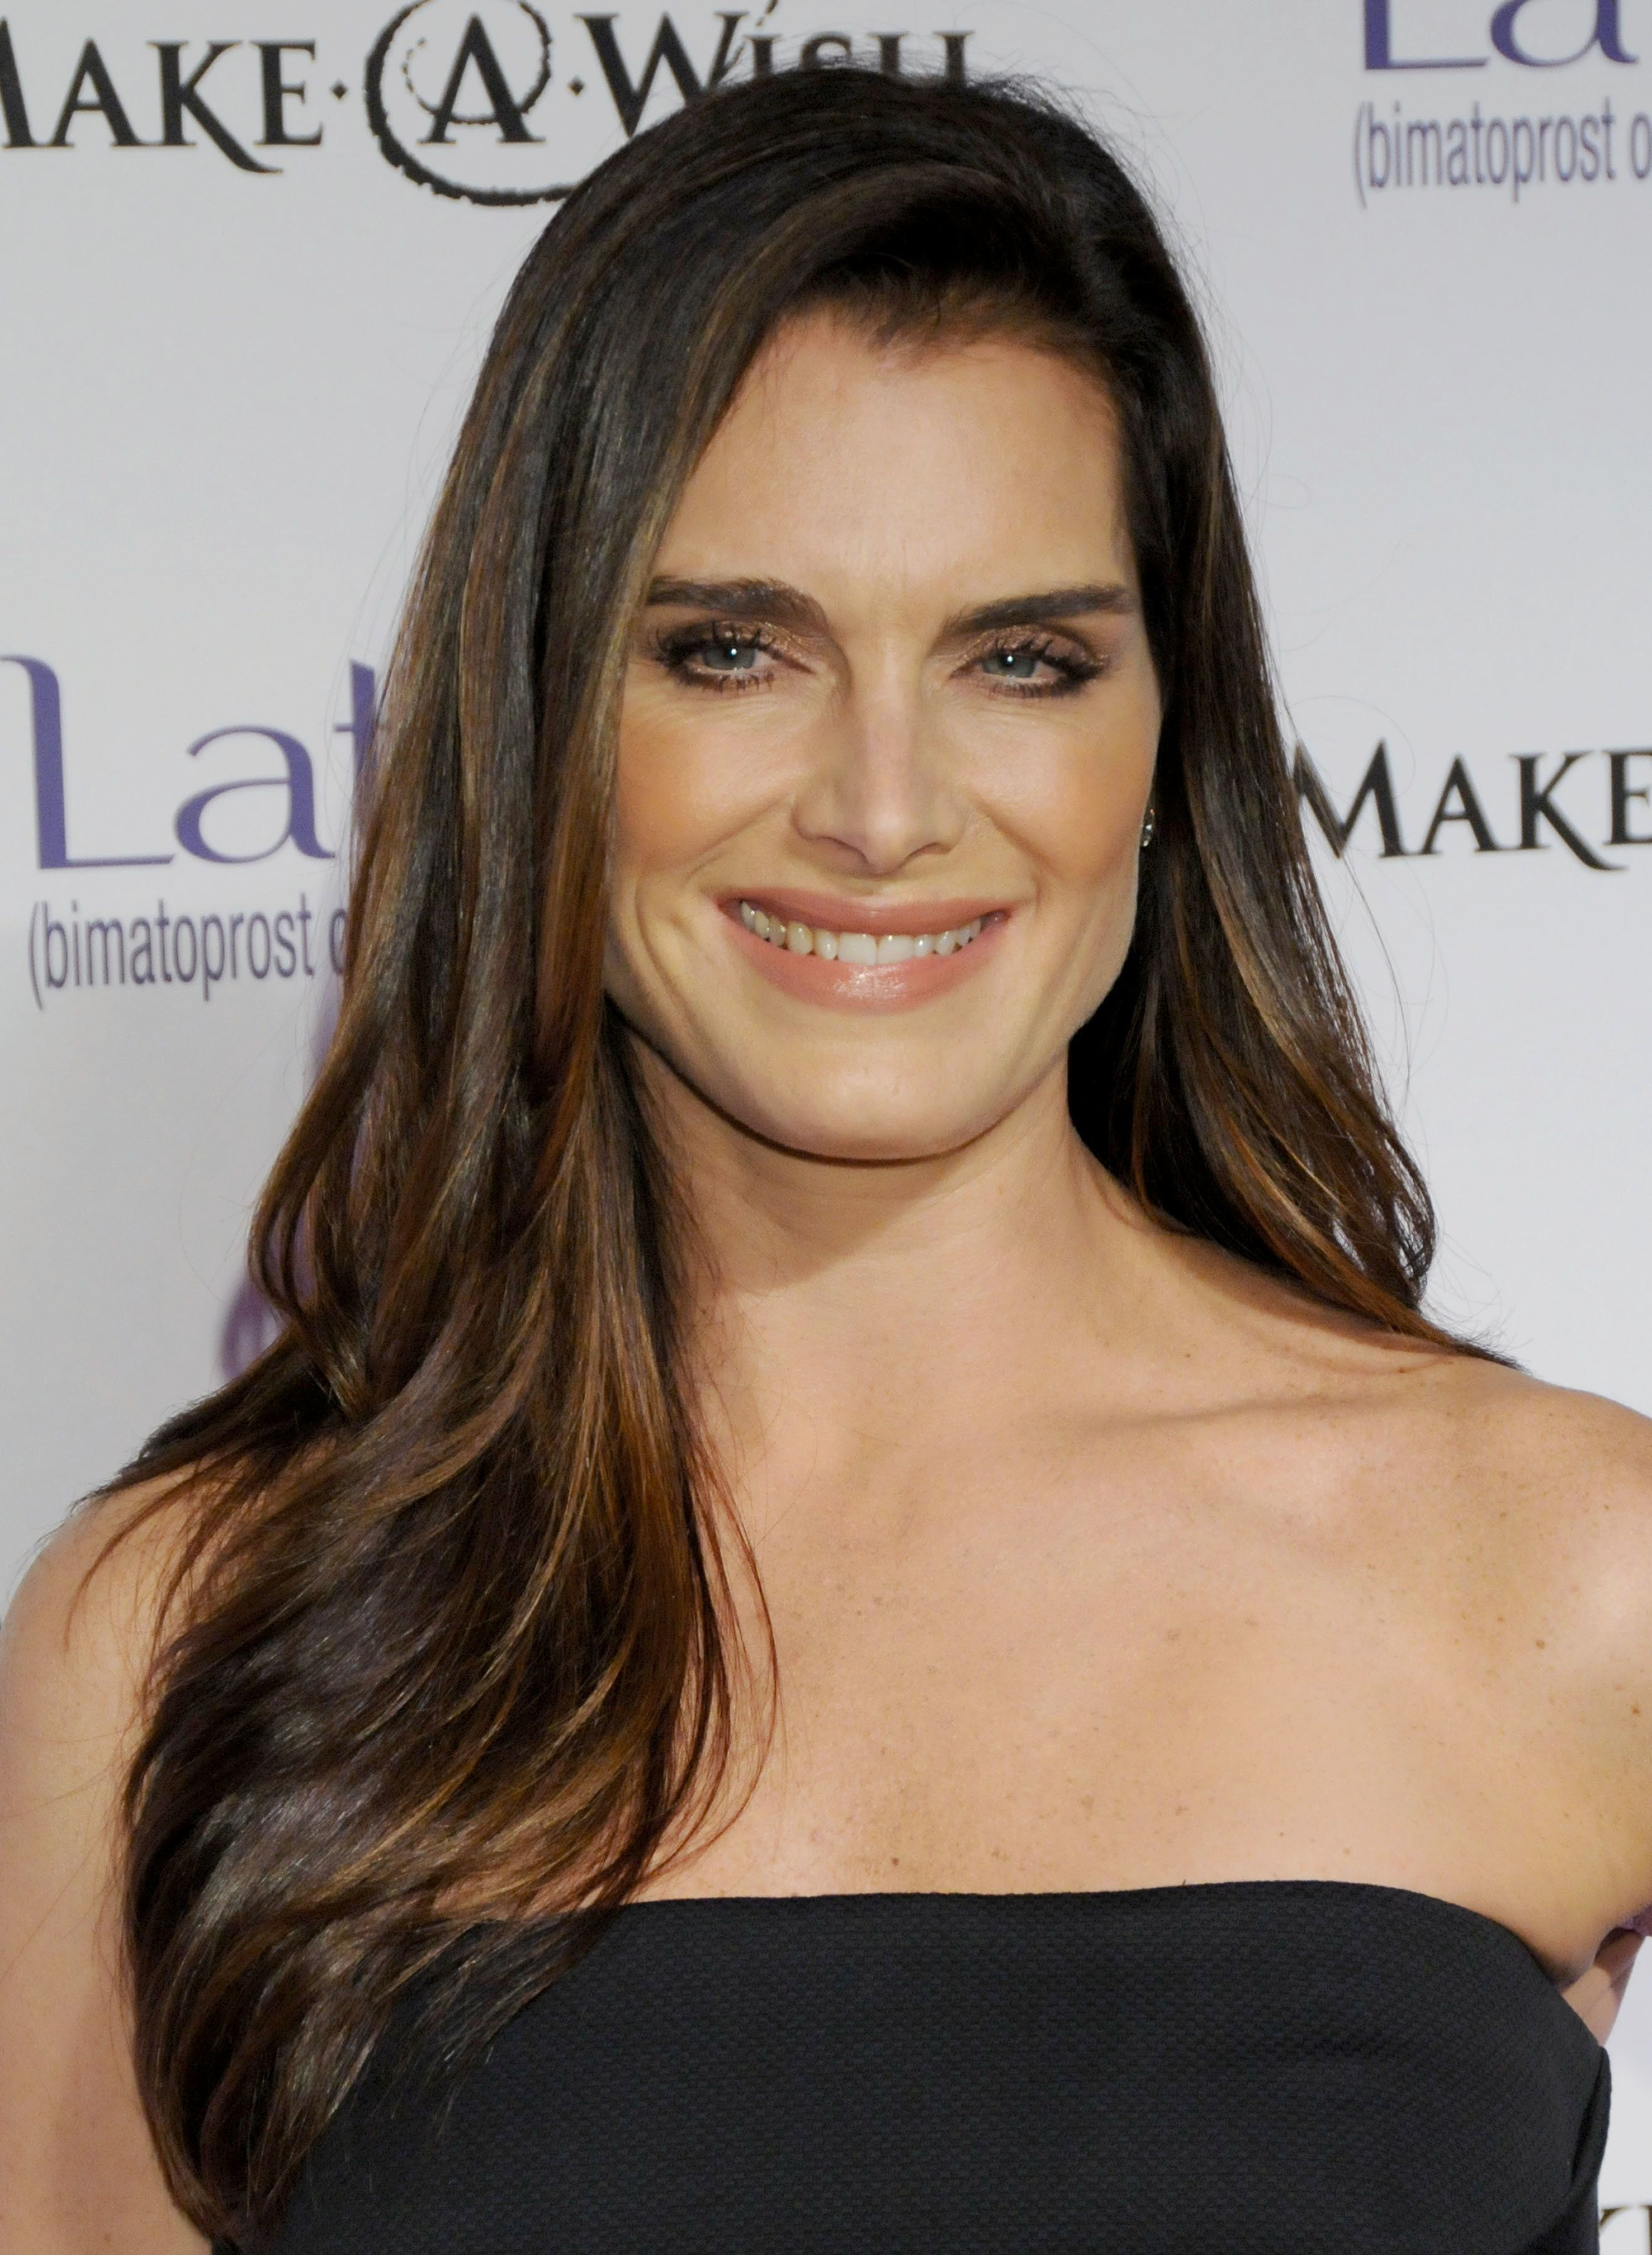 March 26, 2009 West Hollywood, Ca.; Brooke Shields; Launch Party for 'LATISSE' ; Held on La Cienega Blvd.  (Photo by Gregg DeGuire/FilmMagic)